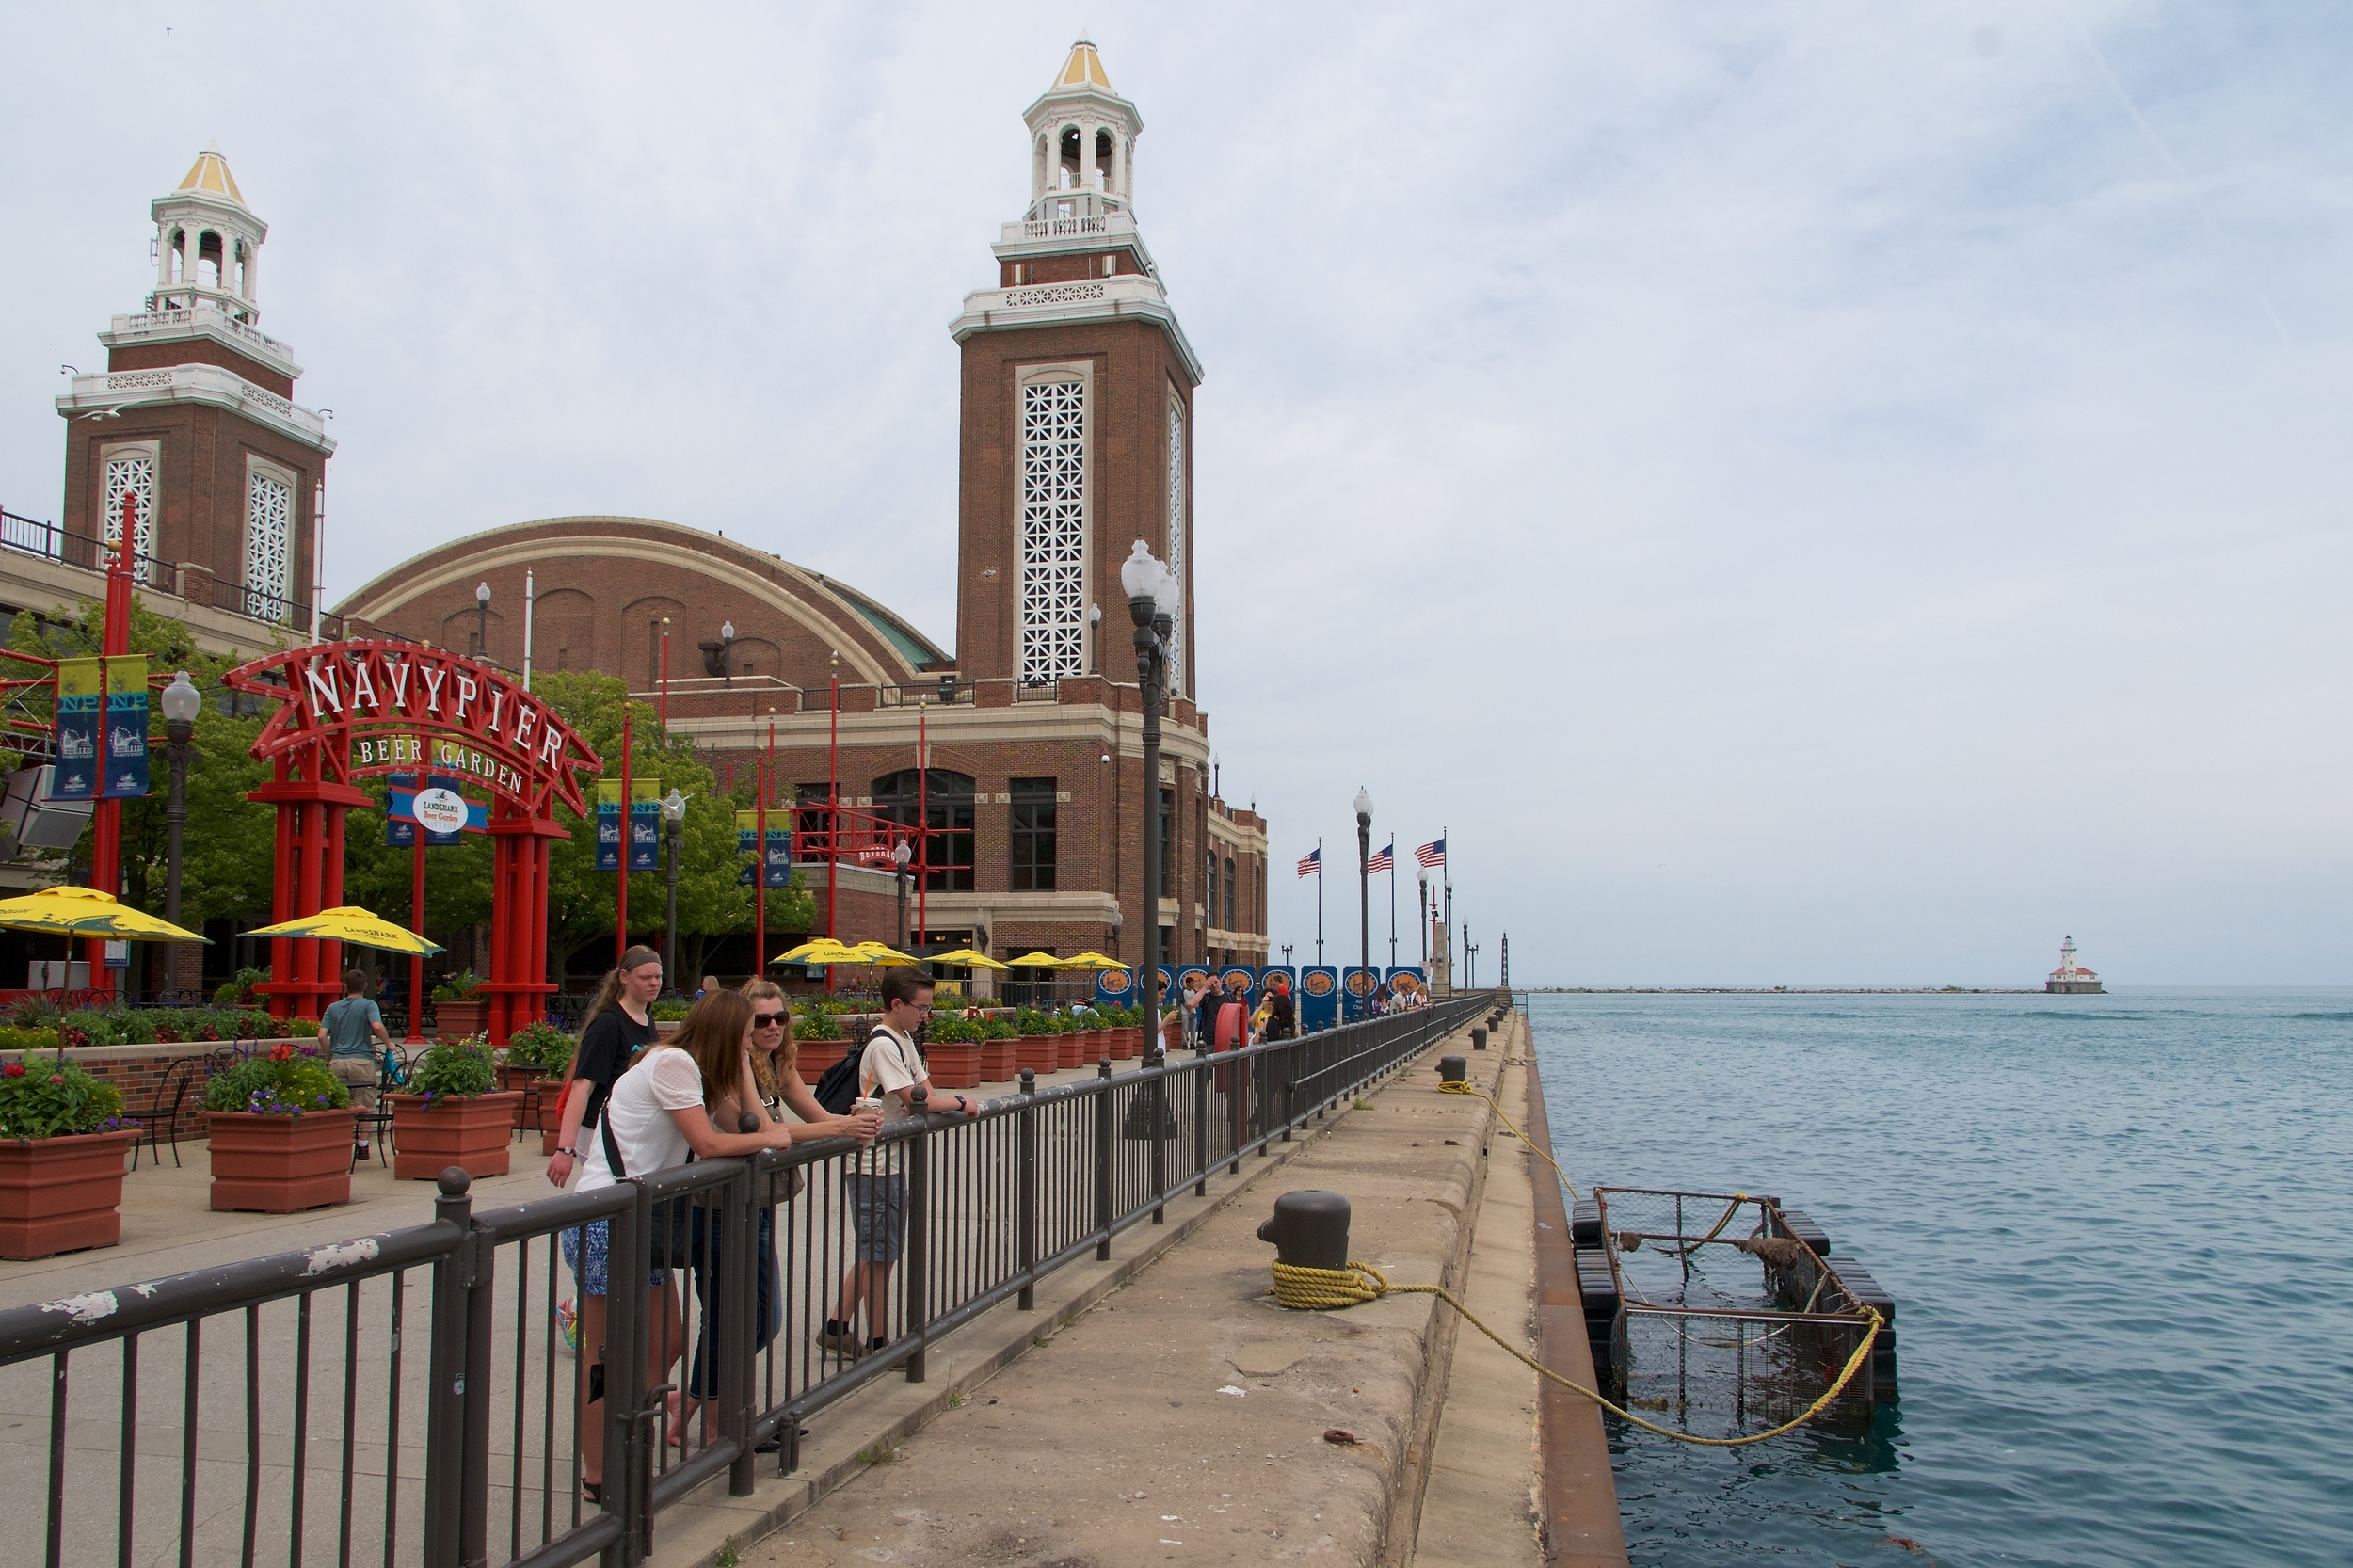 Looking off the end of Navy Pier